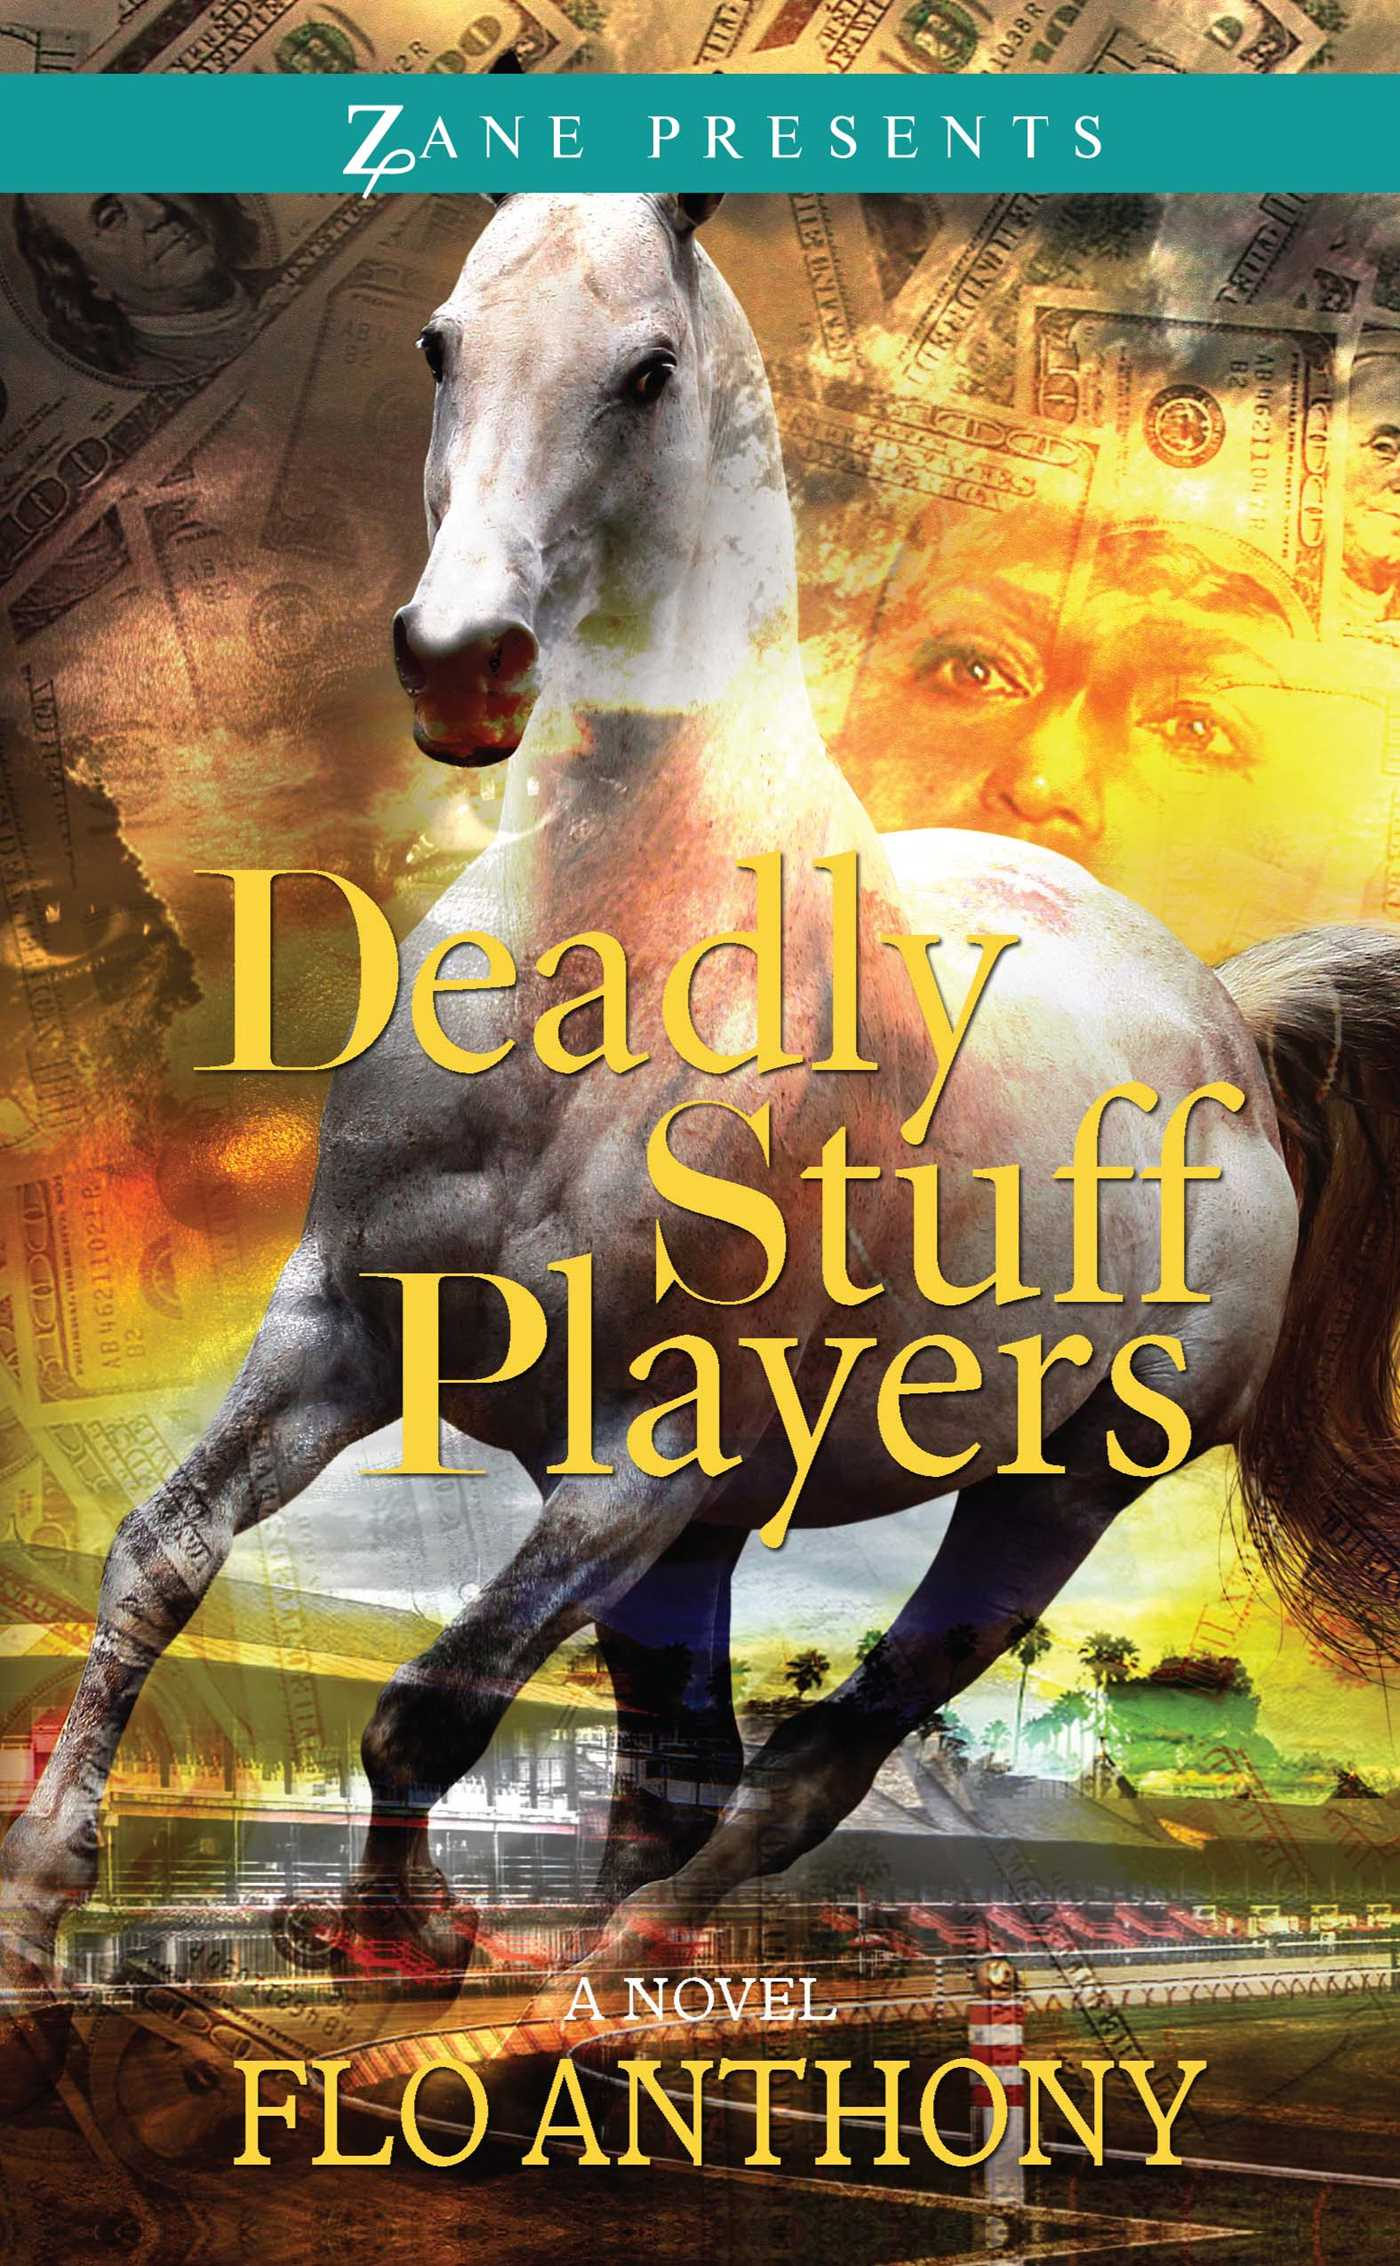 Deadly stuff players 9781593095079 hr